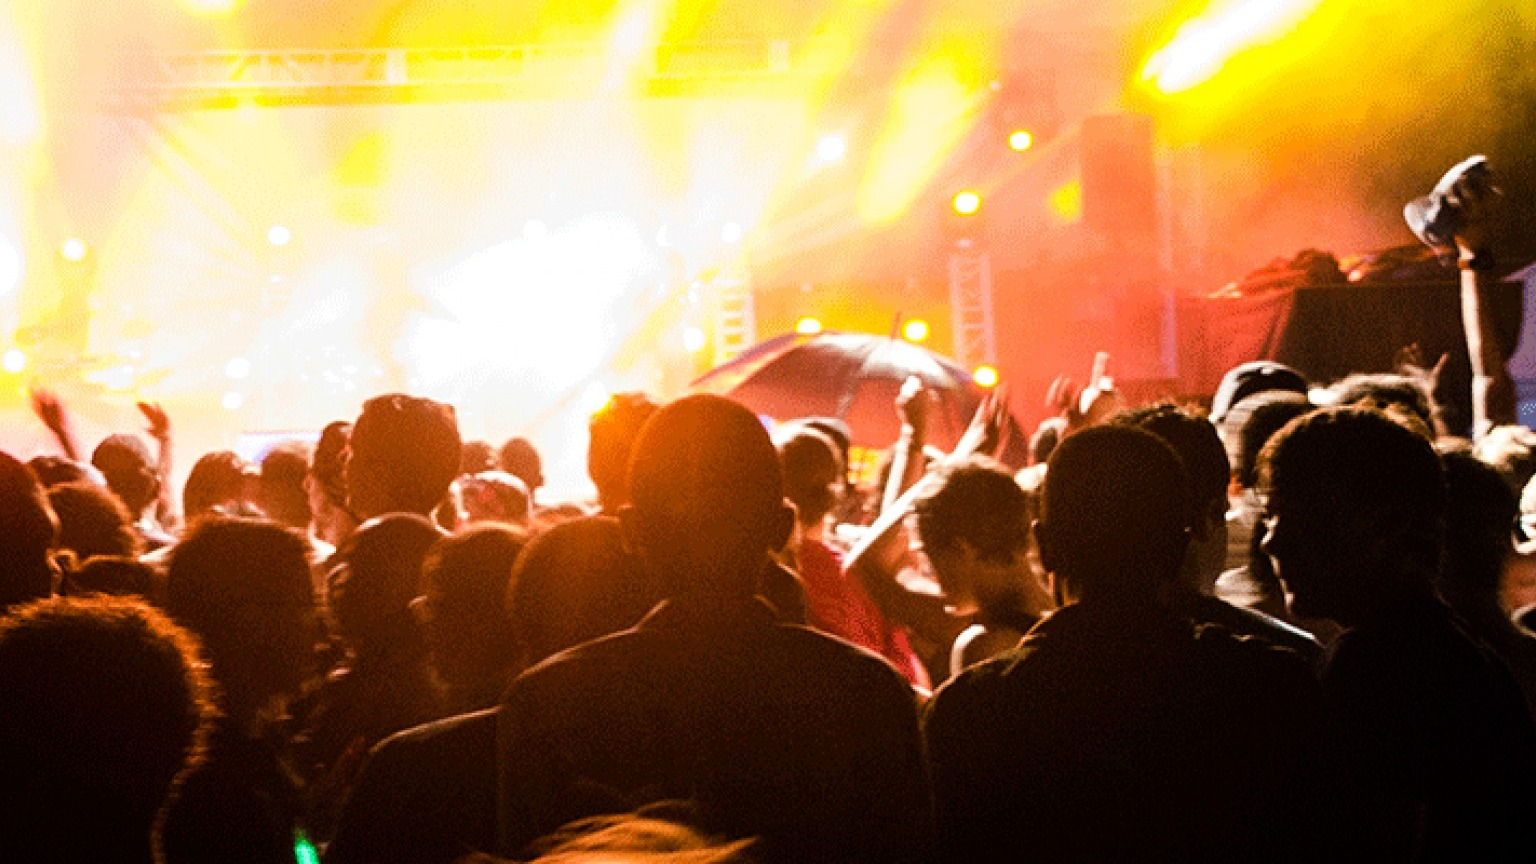 Crowds and lit up stage at Vic Falls Carnival